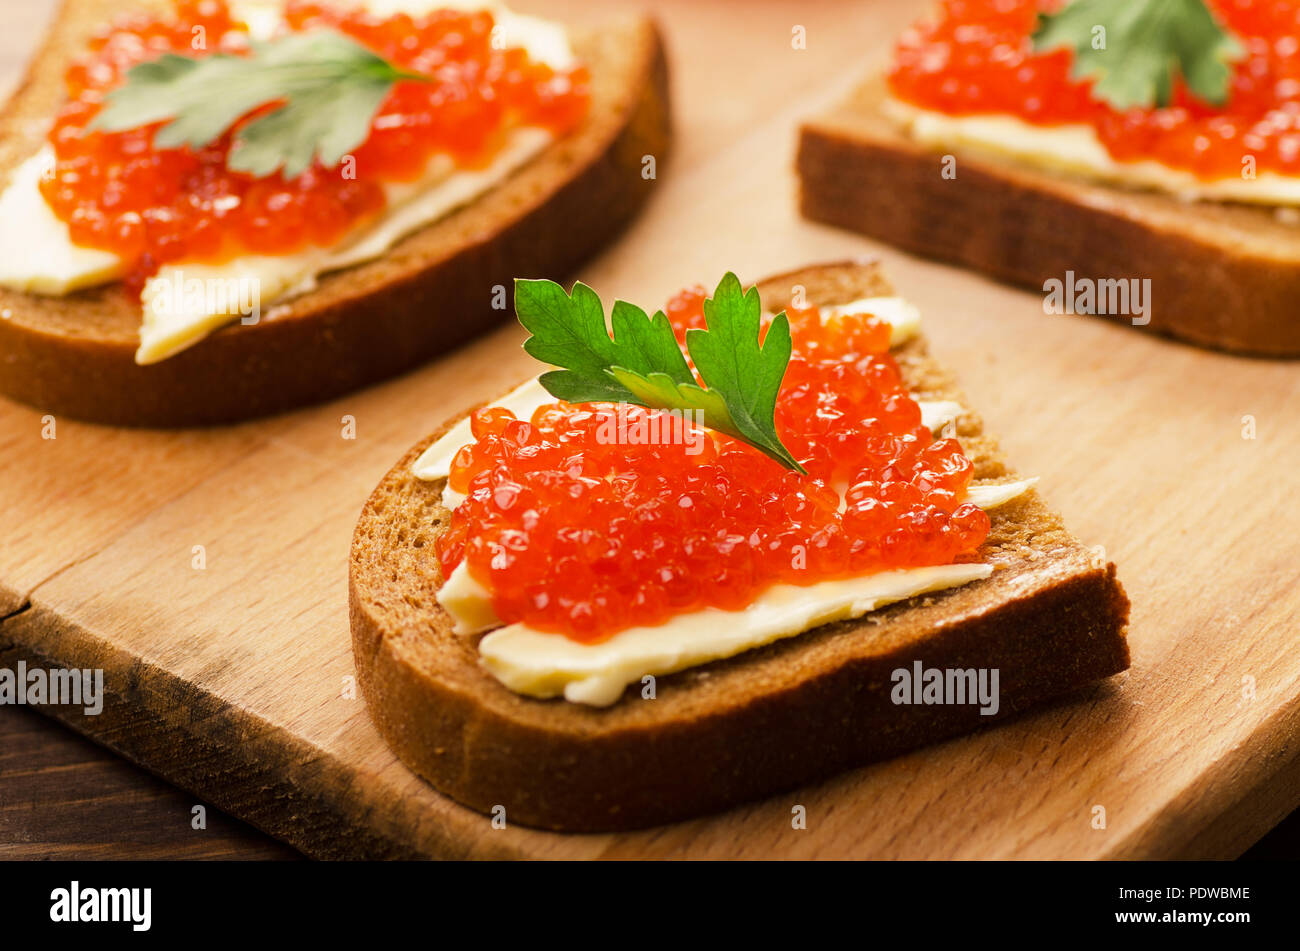 Sandwiches with red caviar on cutting board - Stock Image